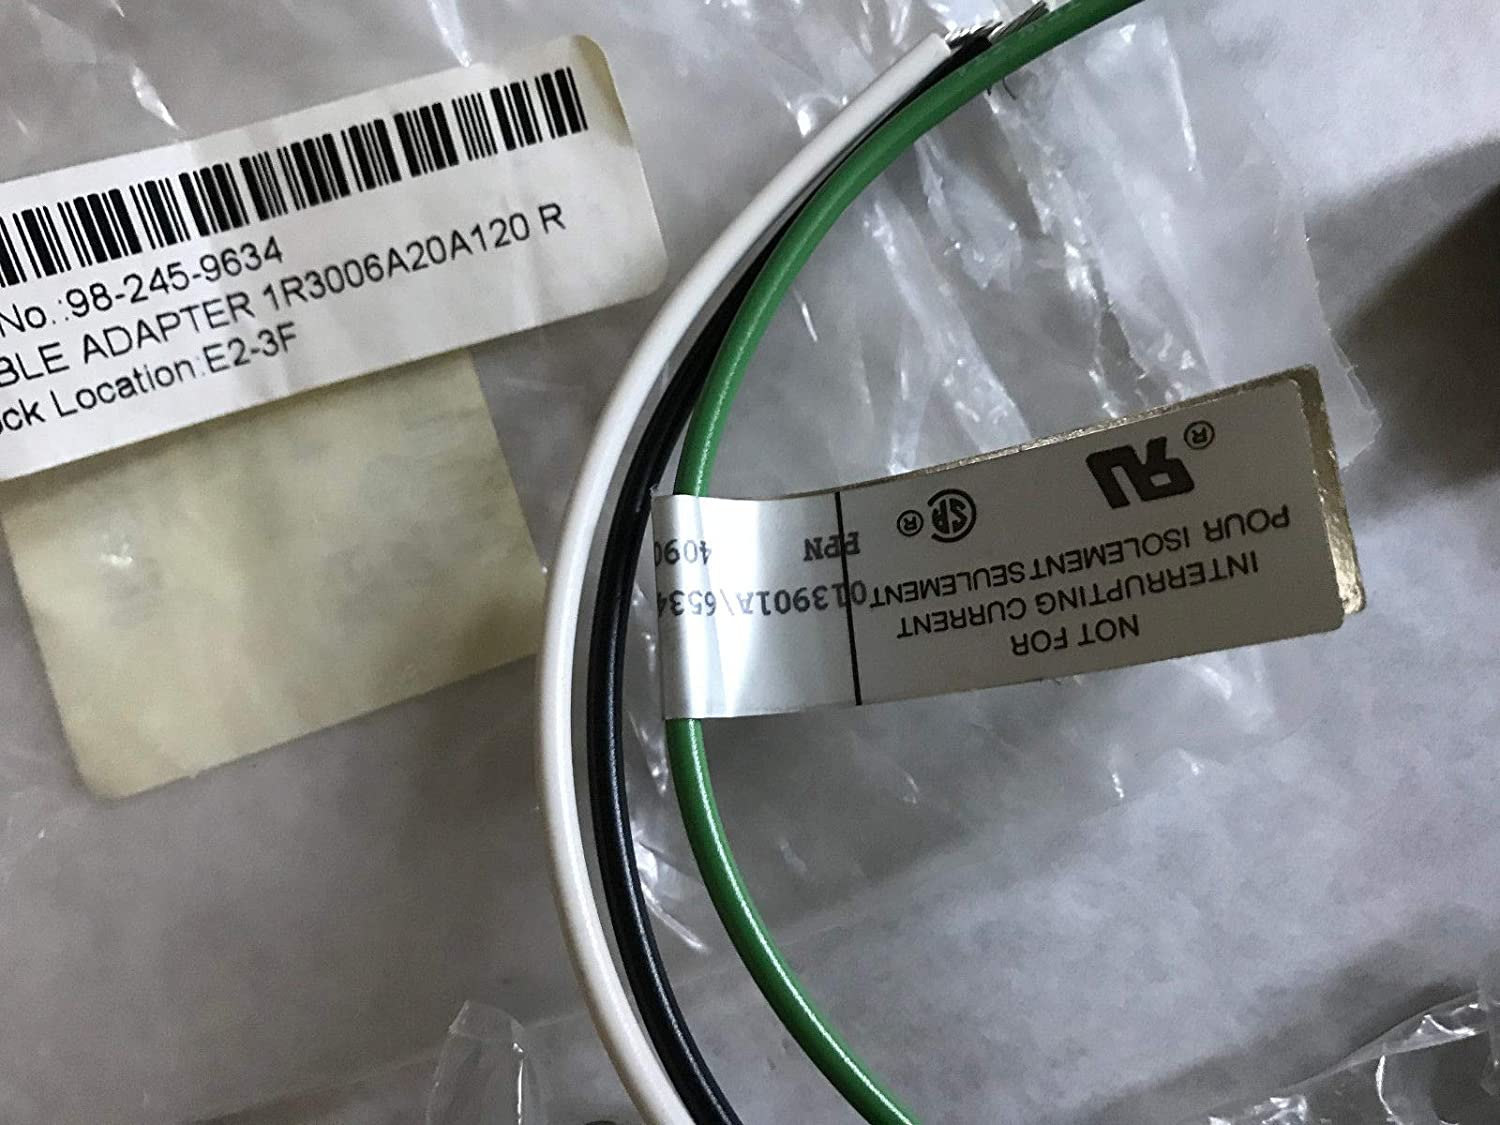 LOT 5 BRAD HARRISON 1R3006A20A120,CABLE ADAPTER 1R3006A20A120#16AWG PVC 13,ES